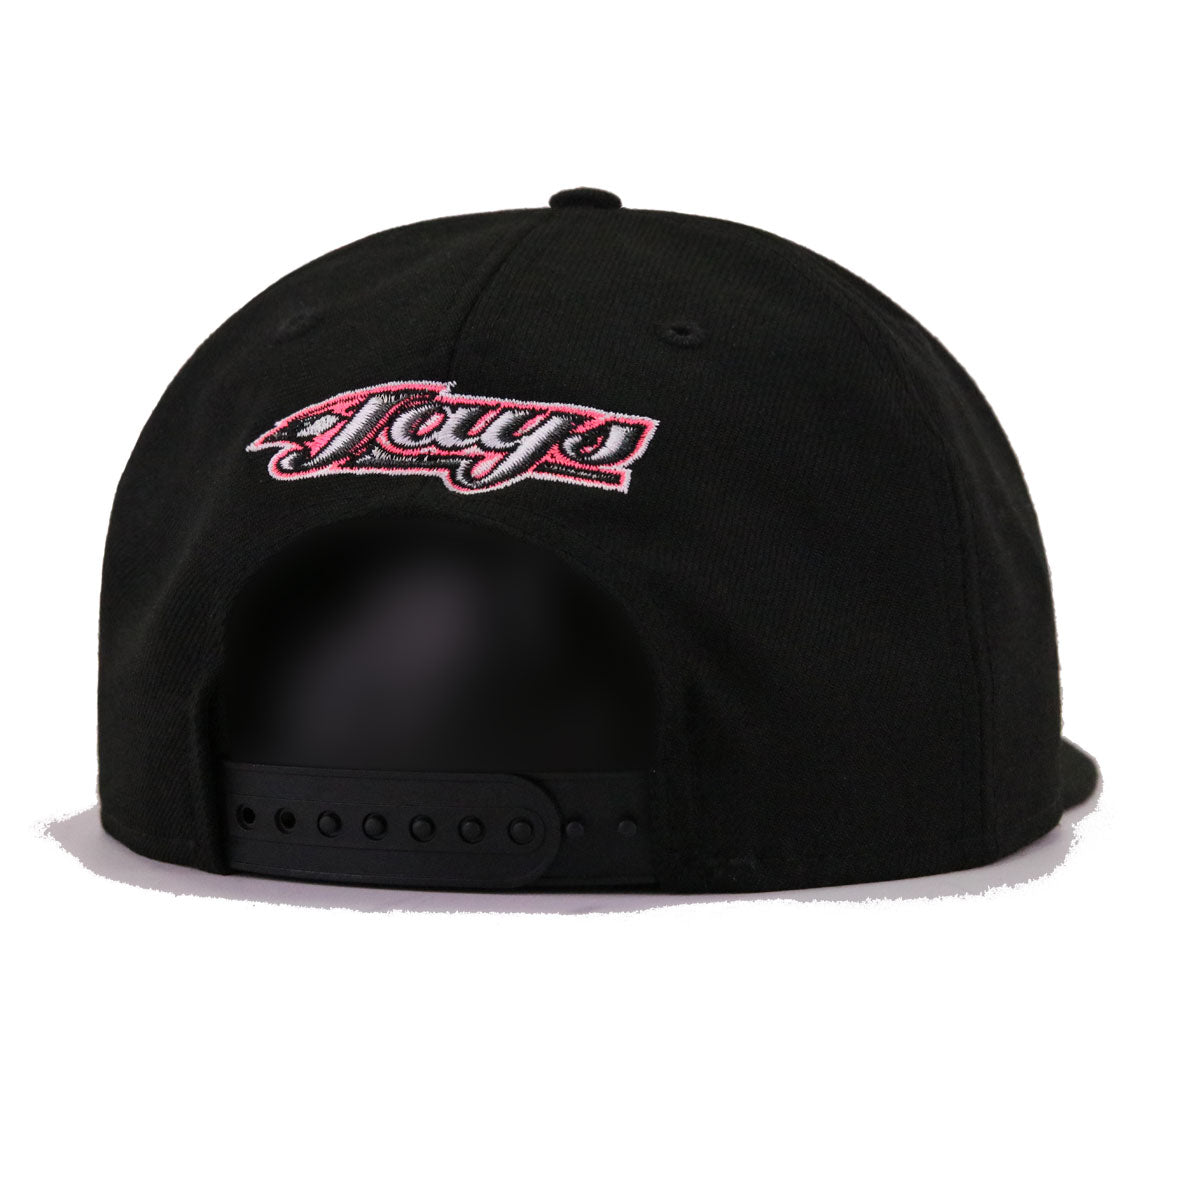 Toronto Blue Jays Black Infrared New Era 9Fifty Snapback